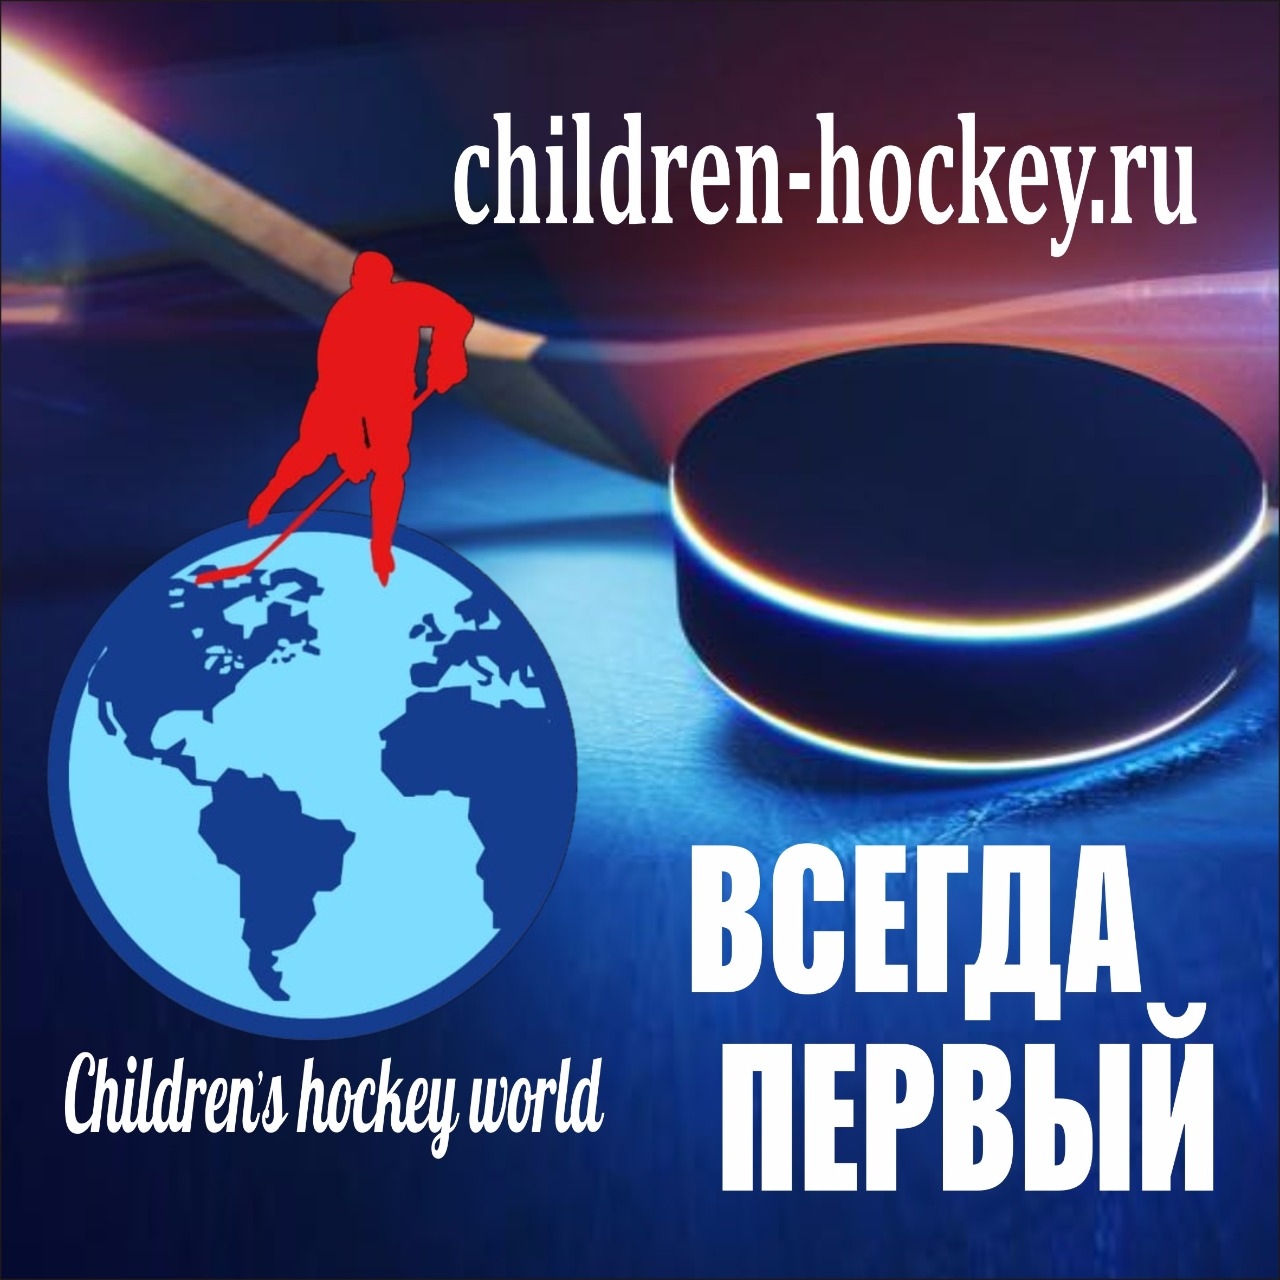 children-hockey